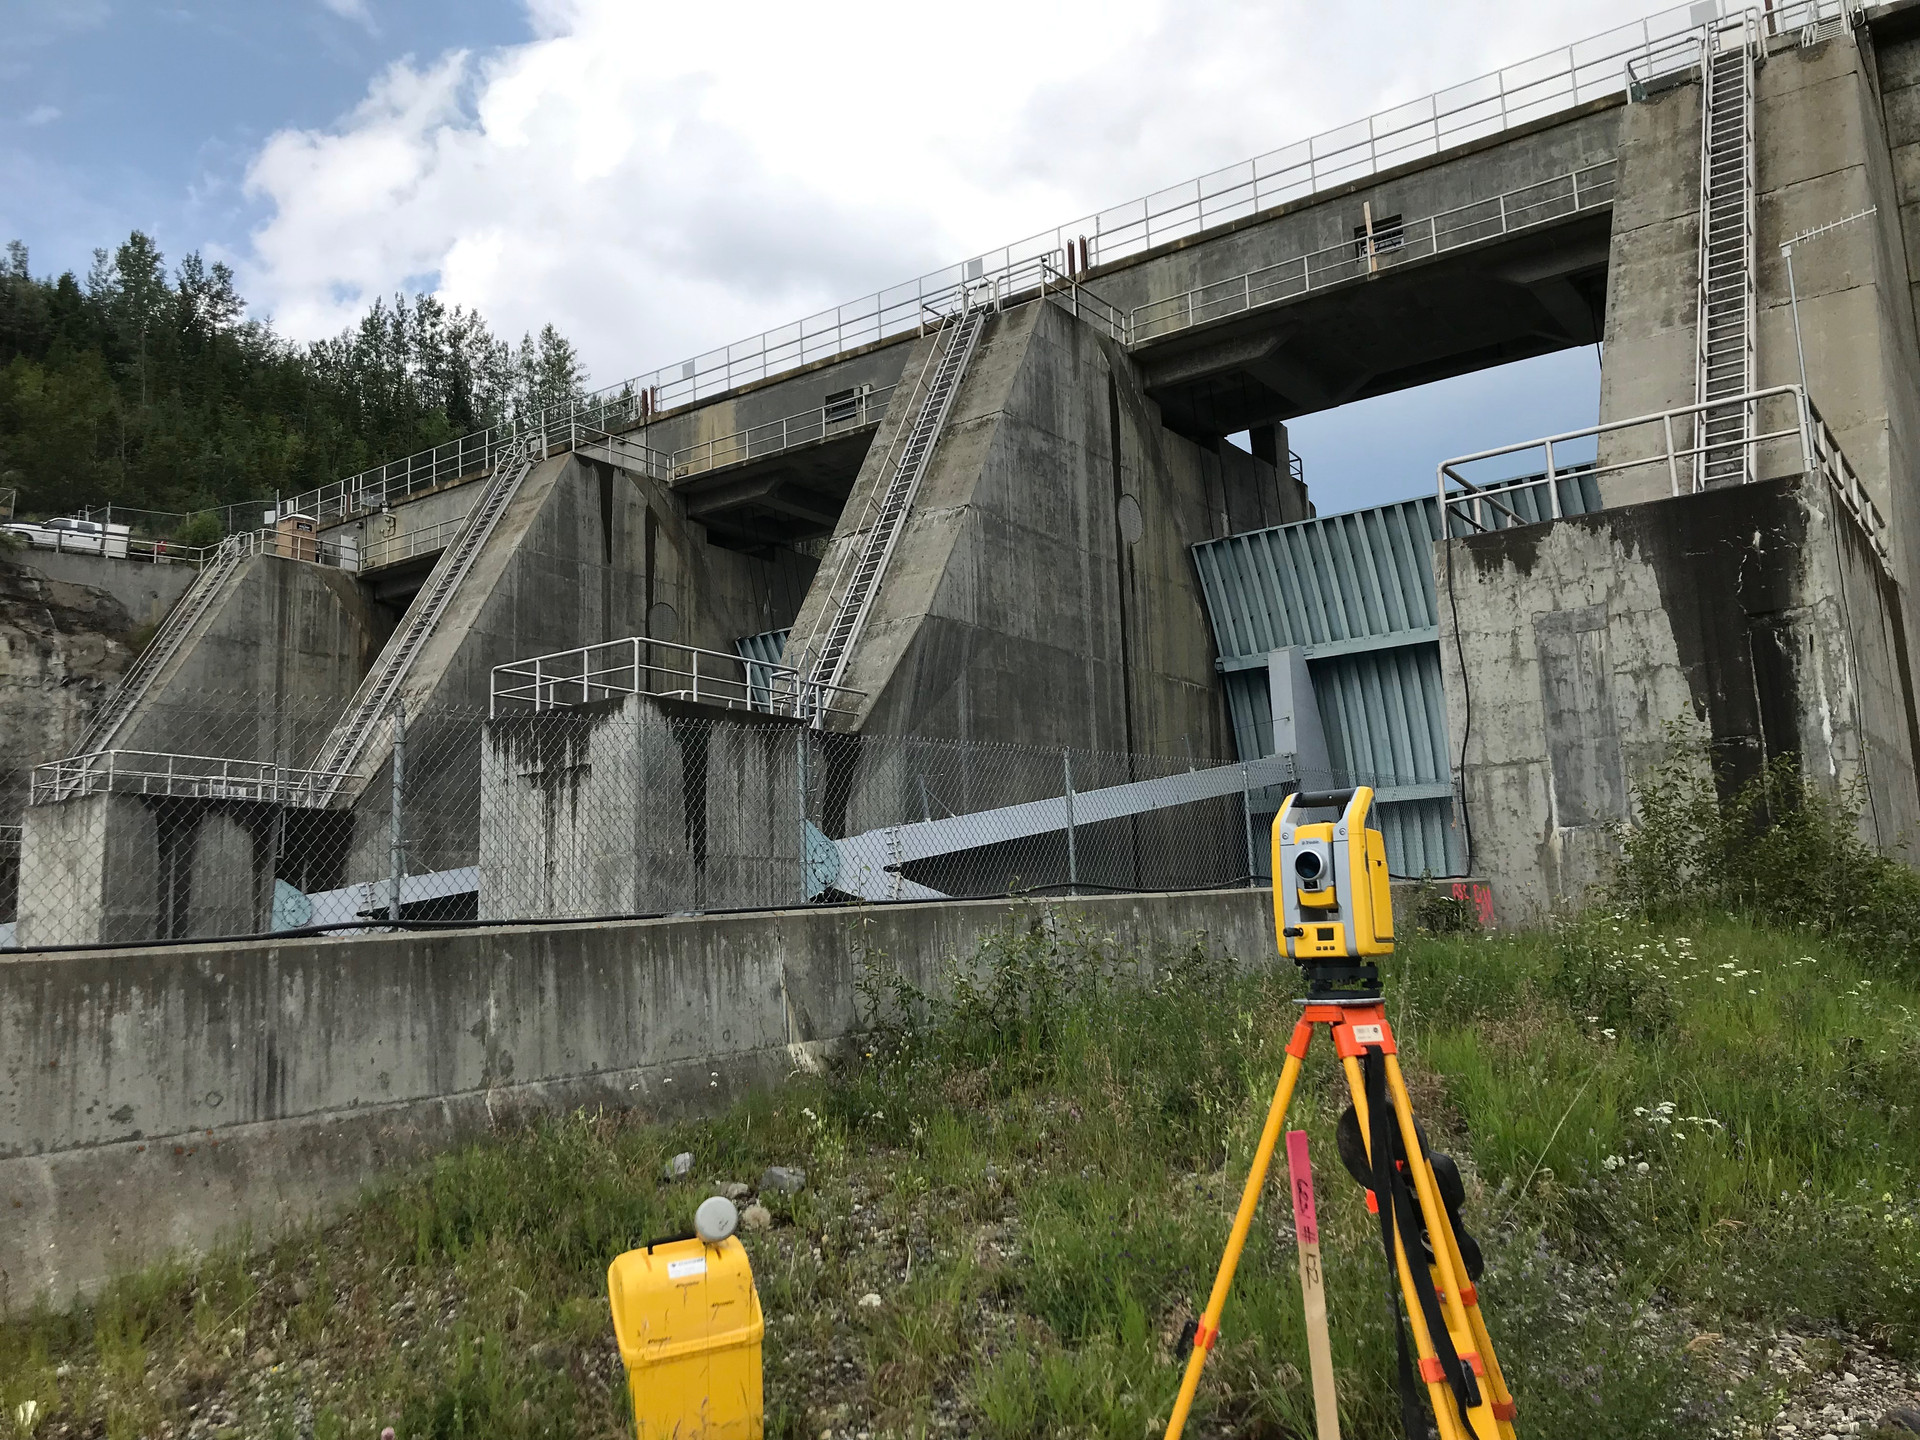 Surveying dam construction